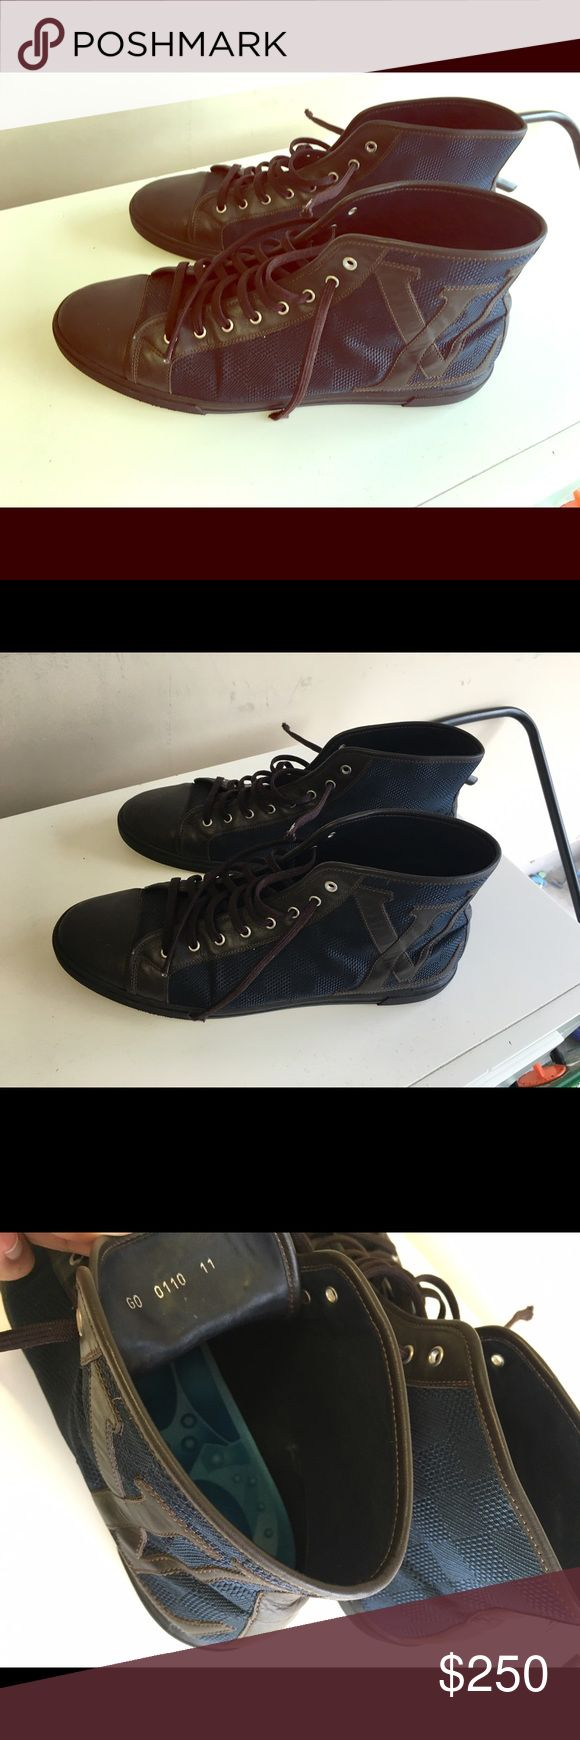 Blue and Brown Authentic Louis Vuitton Sneakers Slightly worn Louis Vuitton men's sneakers Louis Vuitton Shoes Sneakers